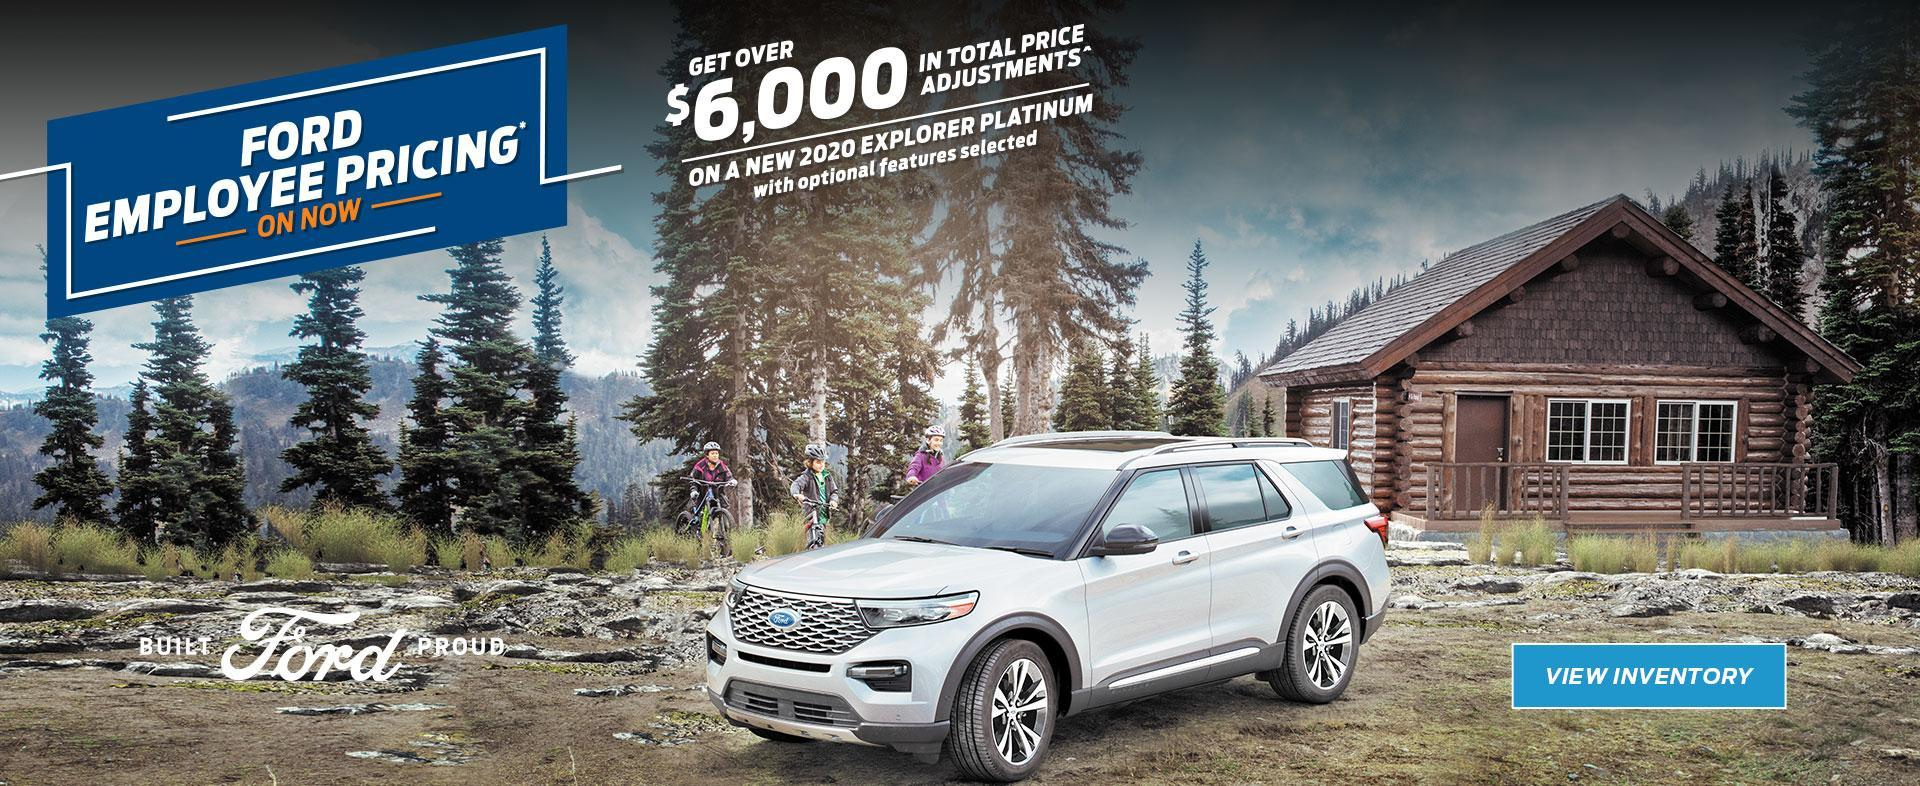 Ford Employee Pricing | 2020 Explorer | Ford of Canada